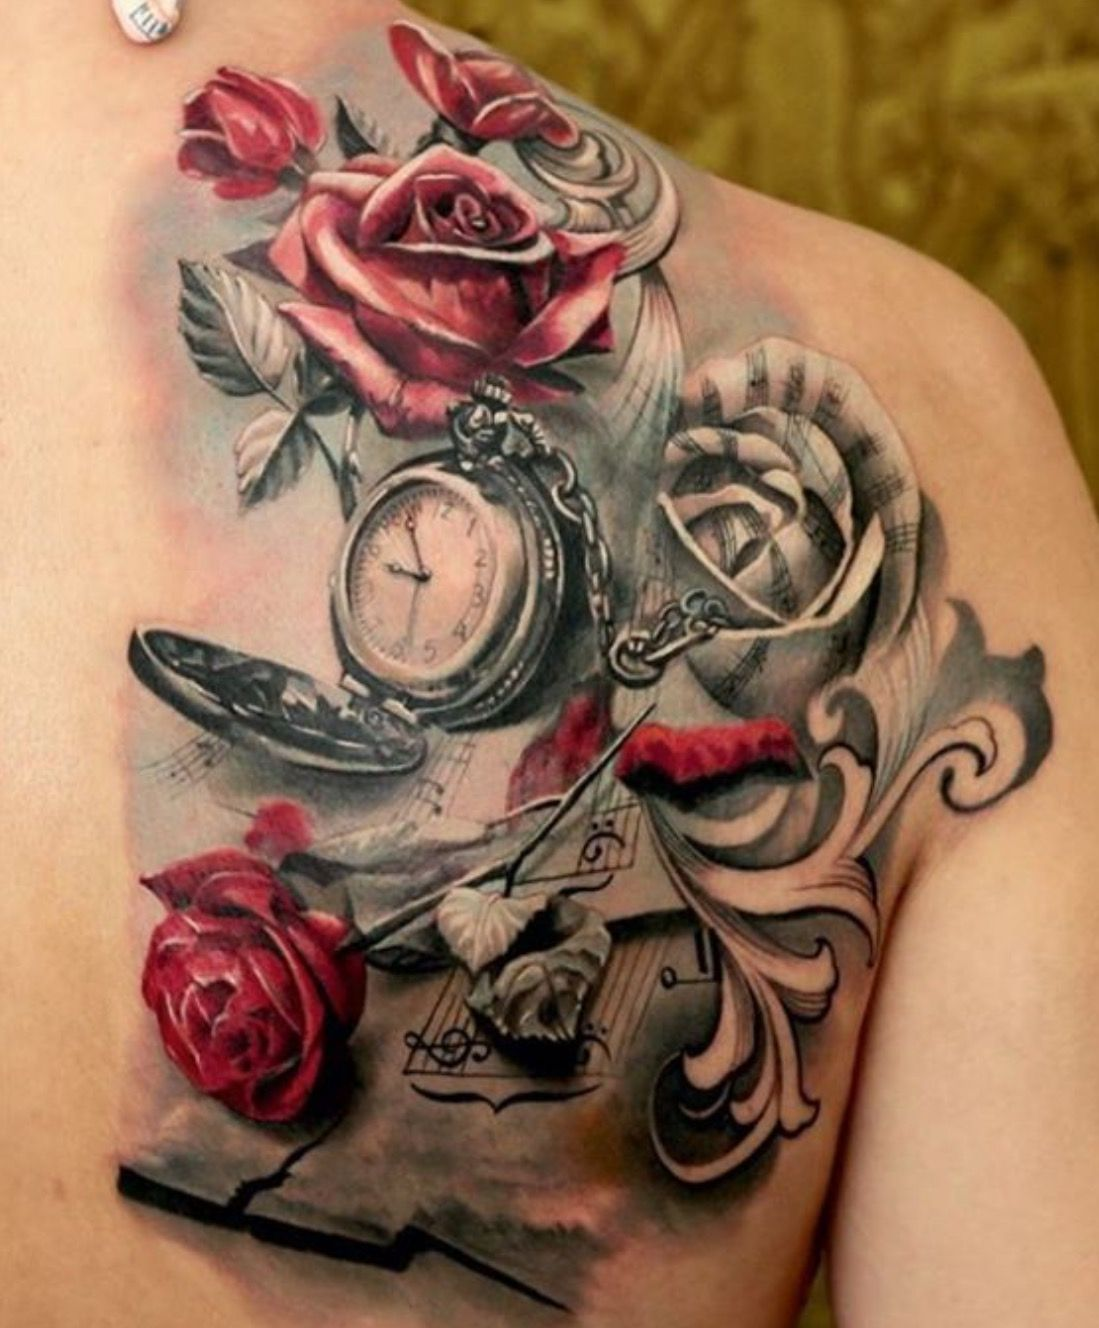 For those music& flower lovers// Pocket watch tattoos// color tattoos// watercolor tattoos// flower tattoos// music note tattoos// back tattoos// tattoo ideas